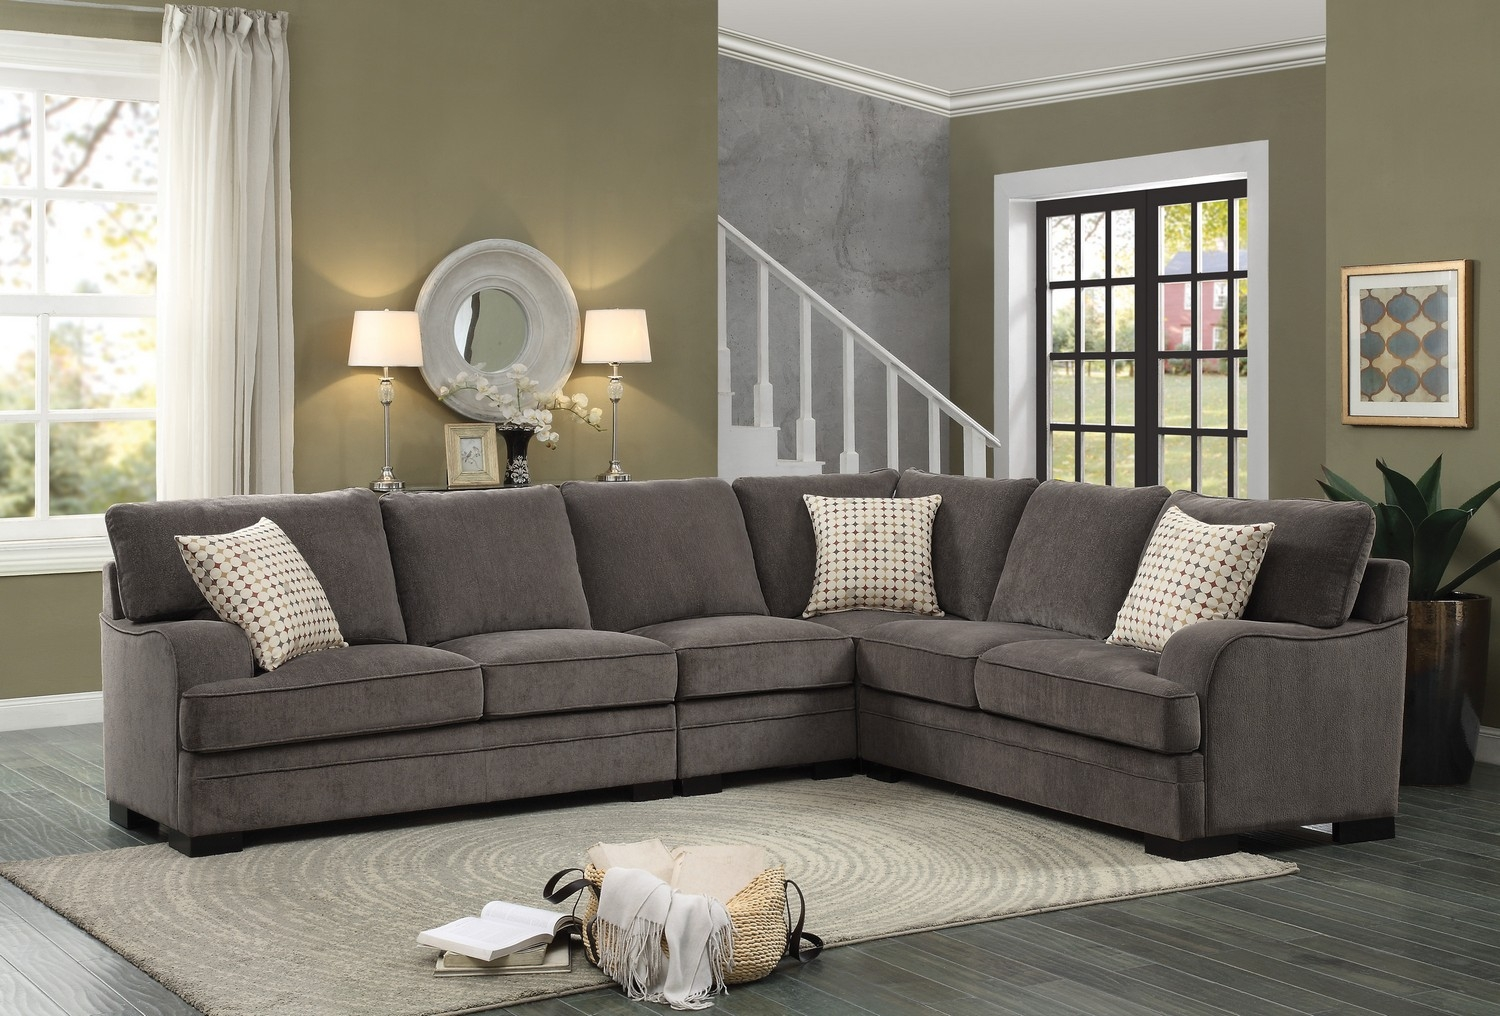 Homelegance Alamosa Sectional Sofa Set Chenille Brown 8335 Regarding Chenille Sectional Sofas (Image 9 of 15)